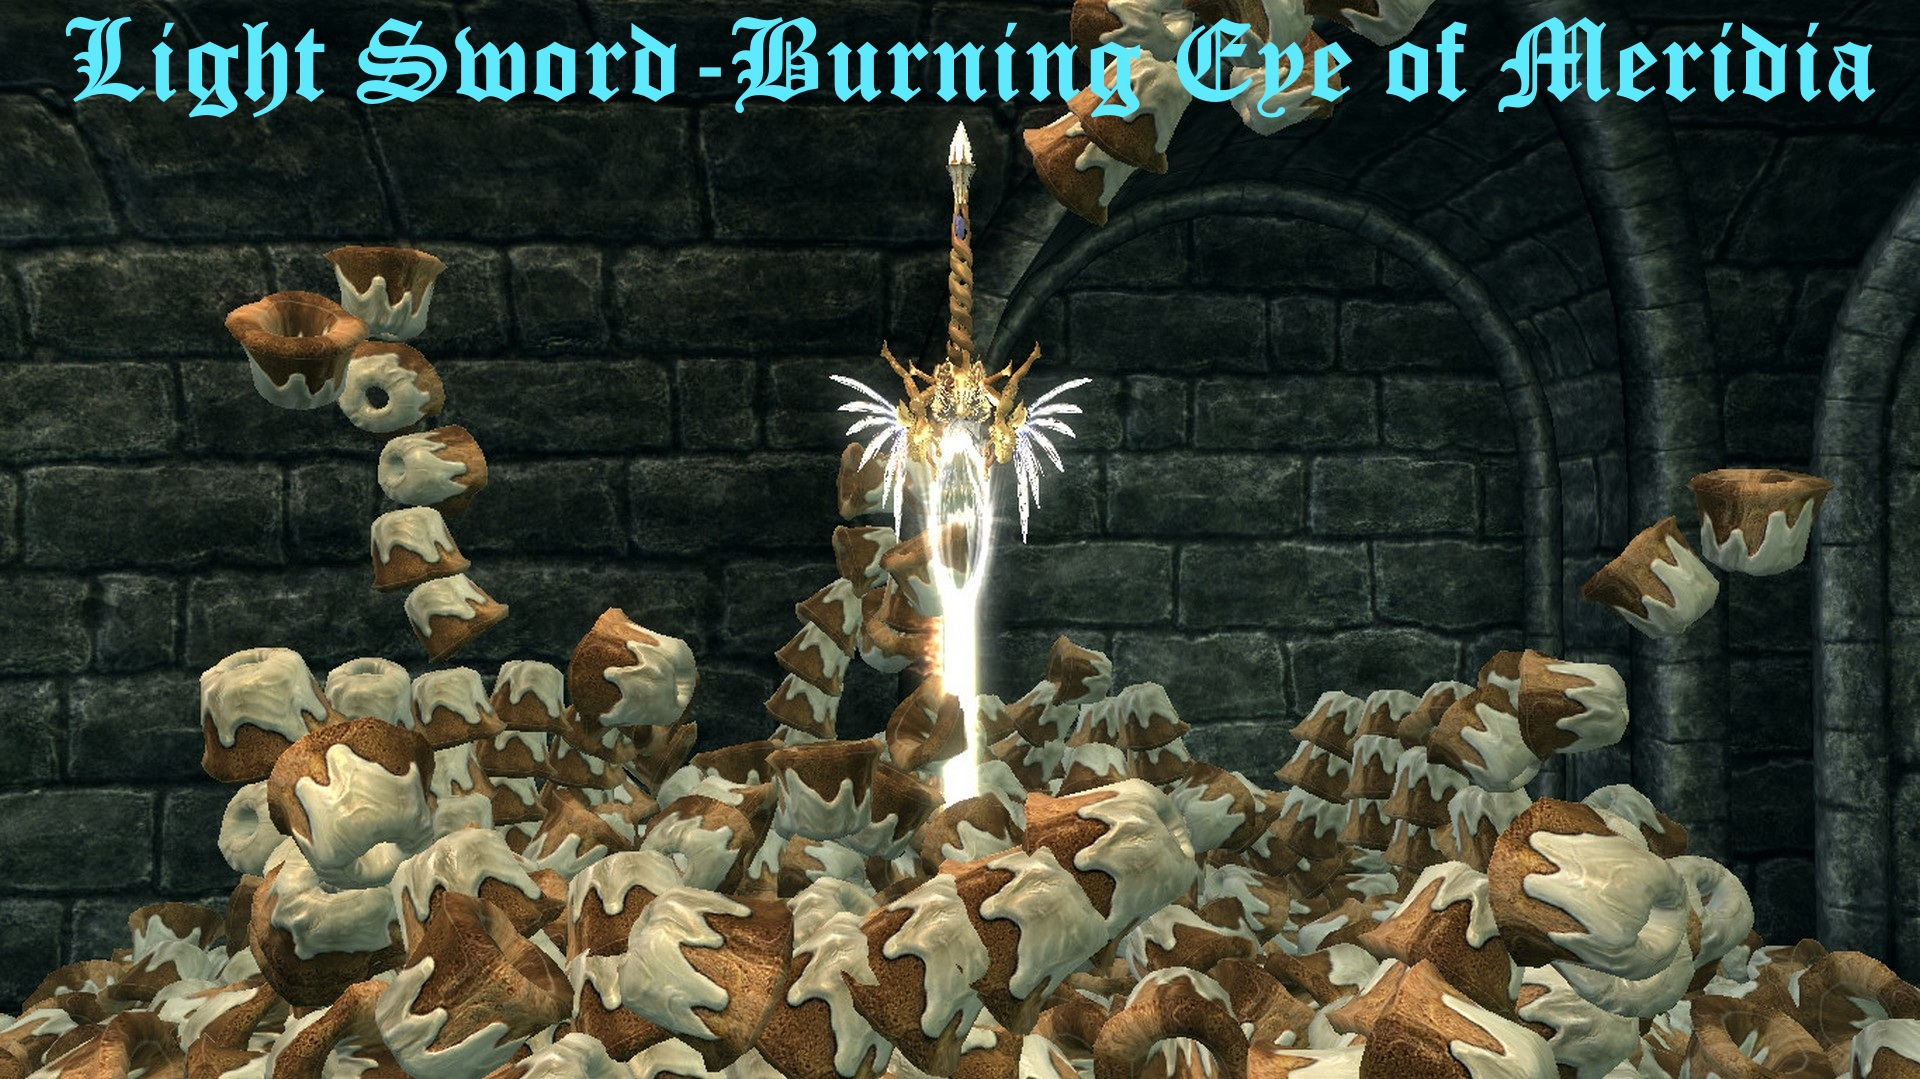 Light_Sword_Burning_Eye_of_Meridia.jpg